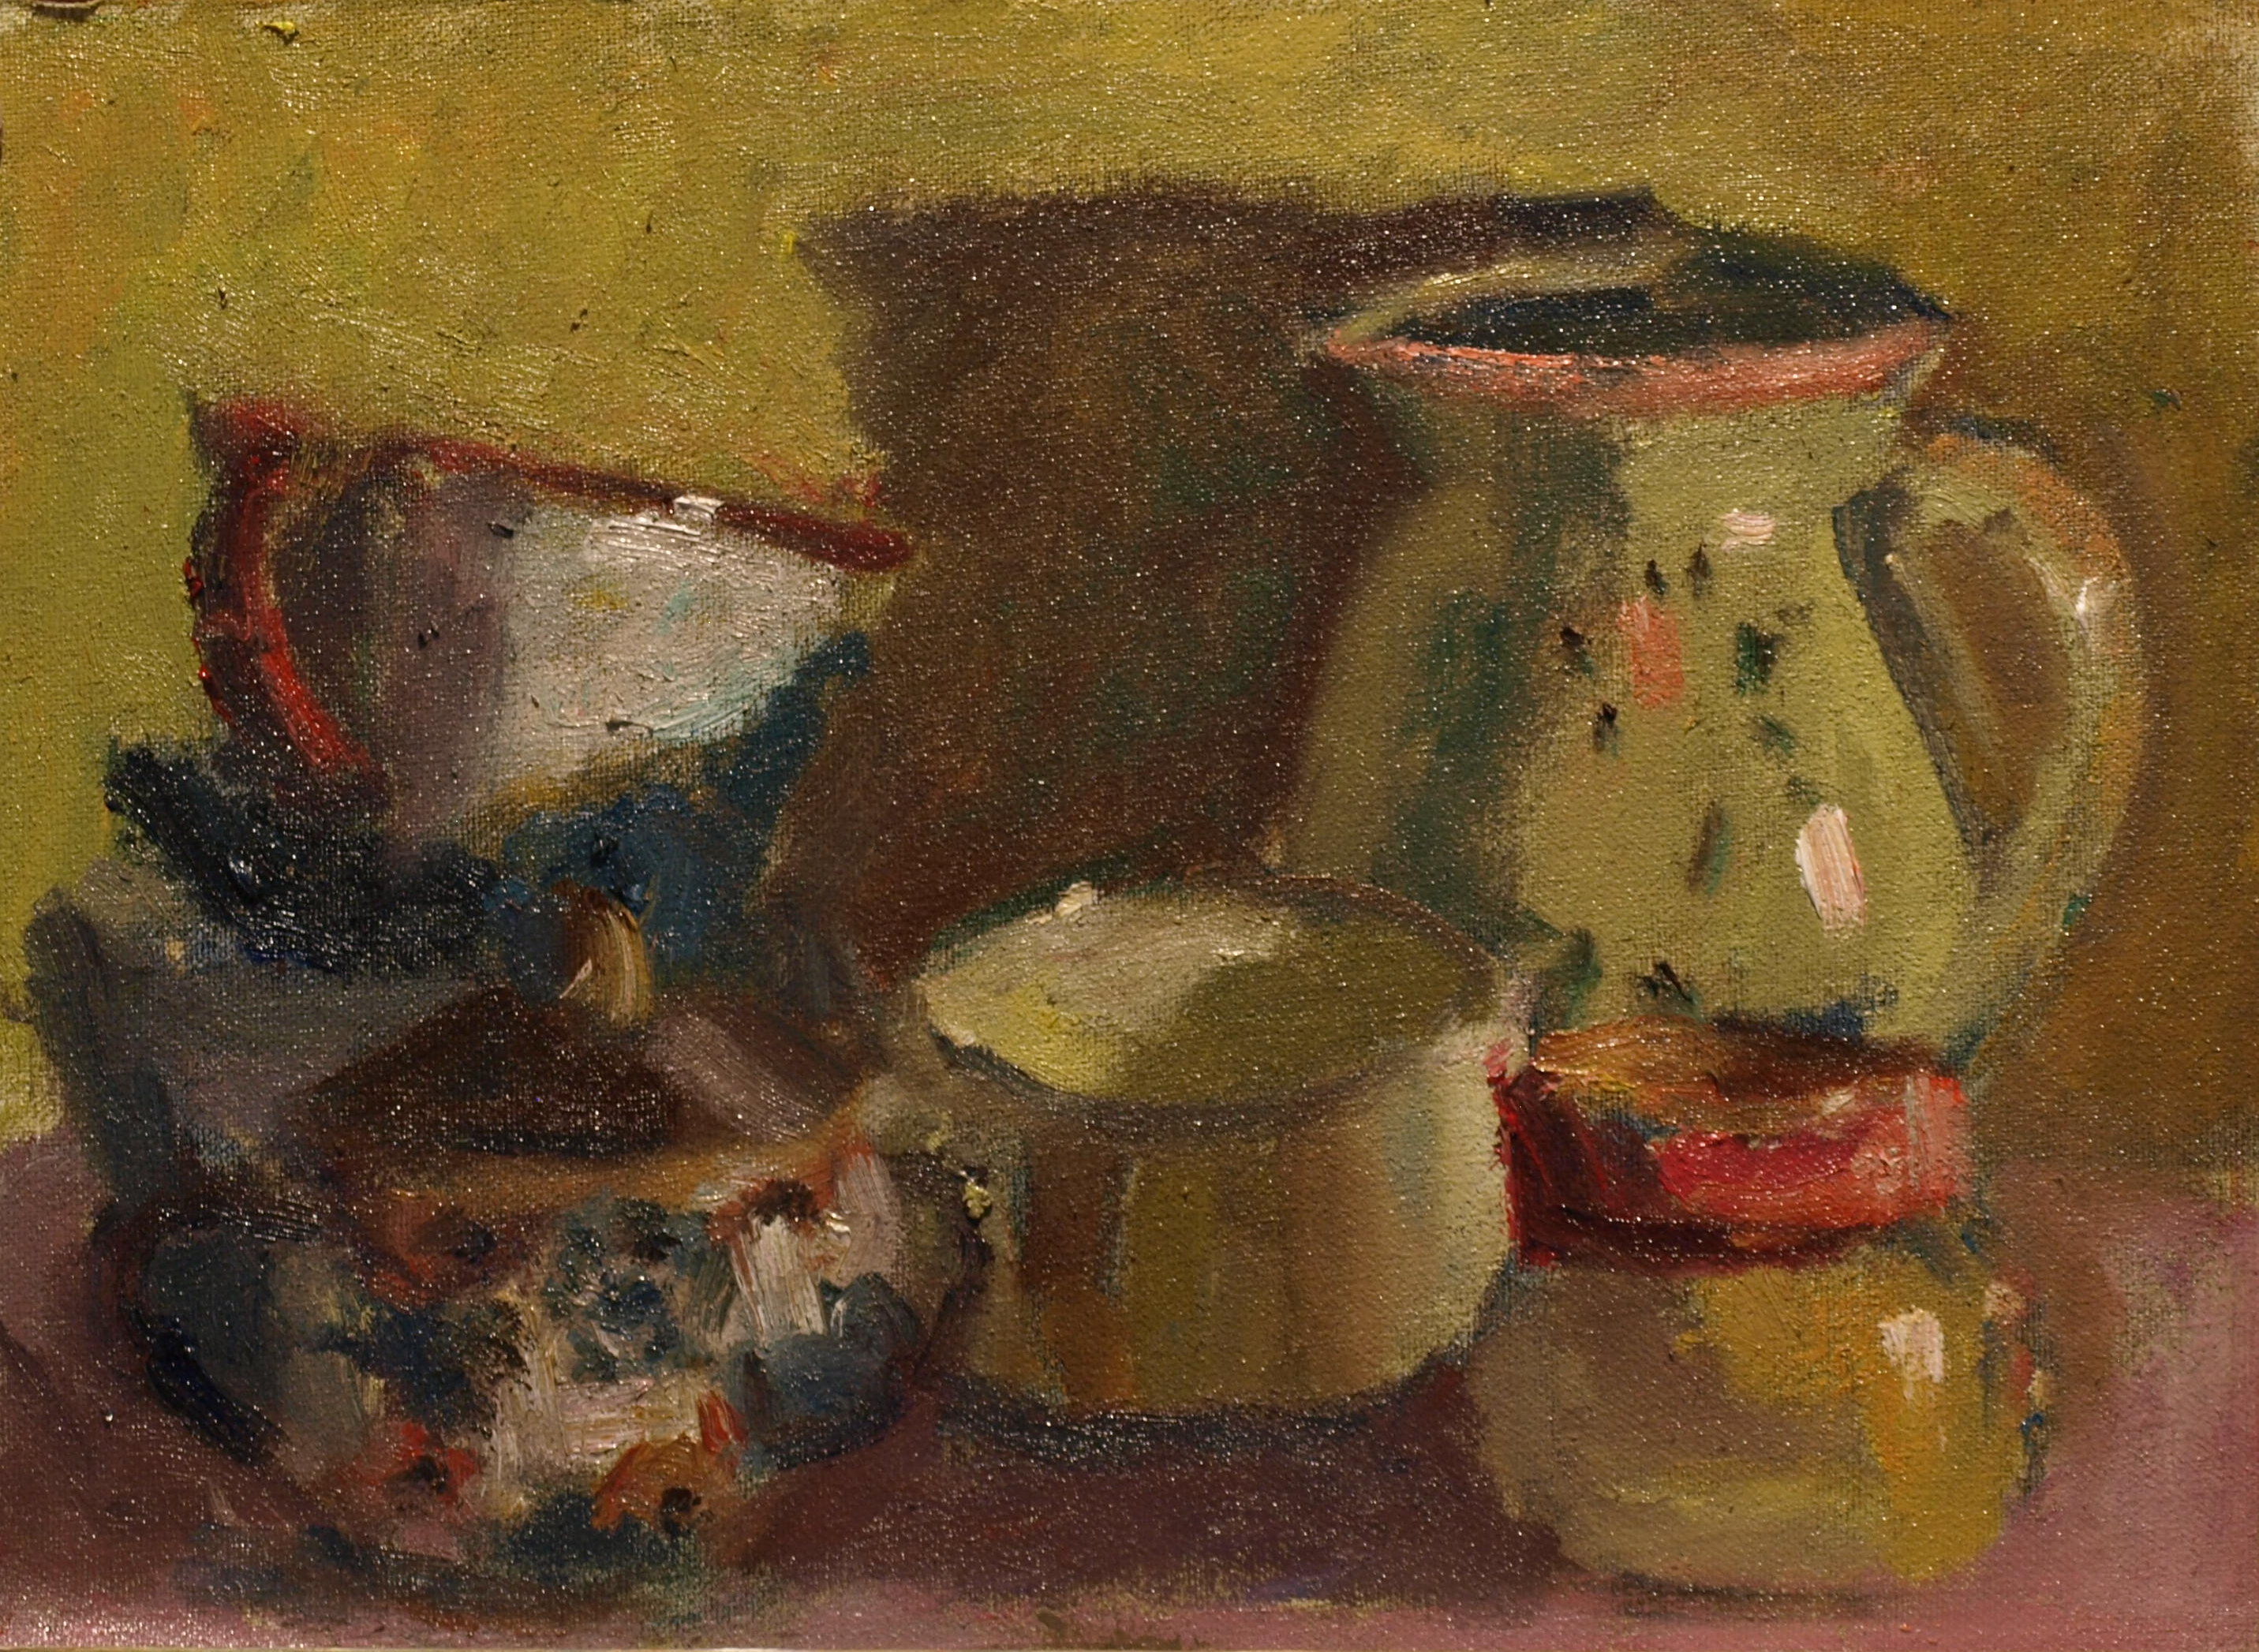 Brick-a-Brack, Oil on Canvas on Panel, 9 x 12 Inches, by Richard Stalter, $220